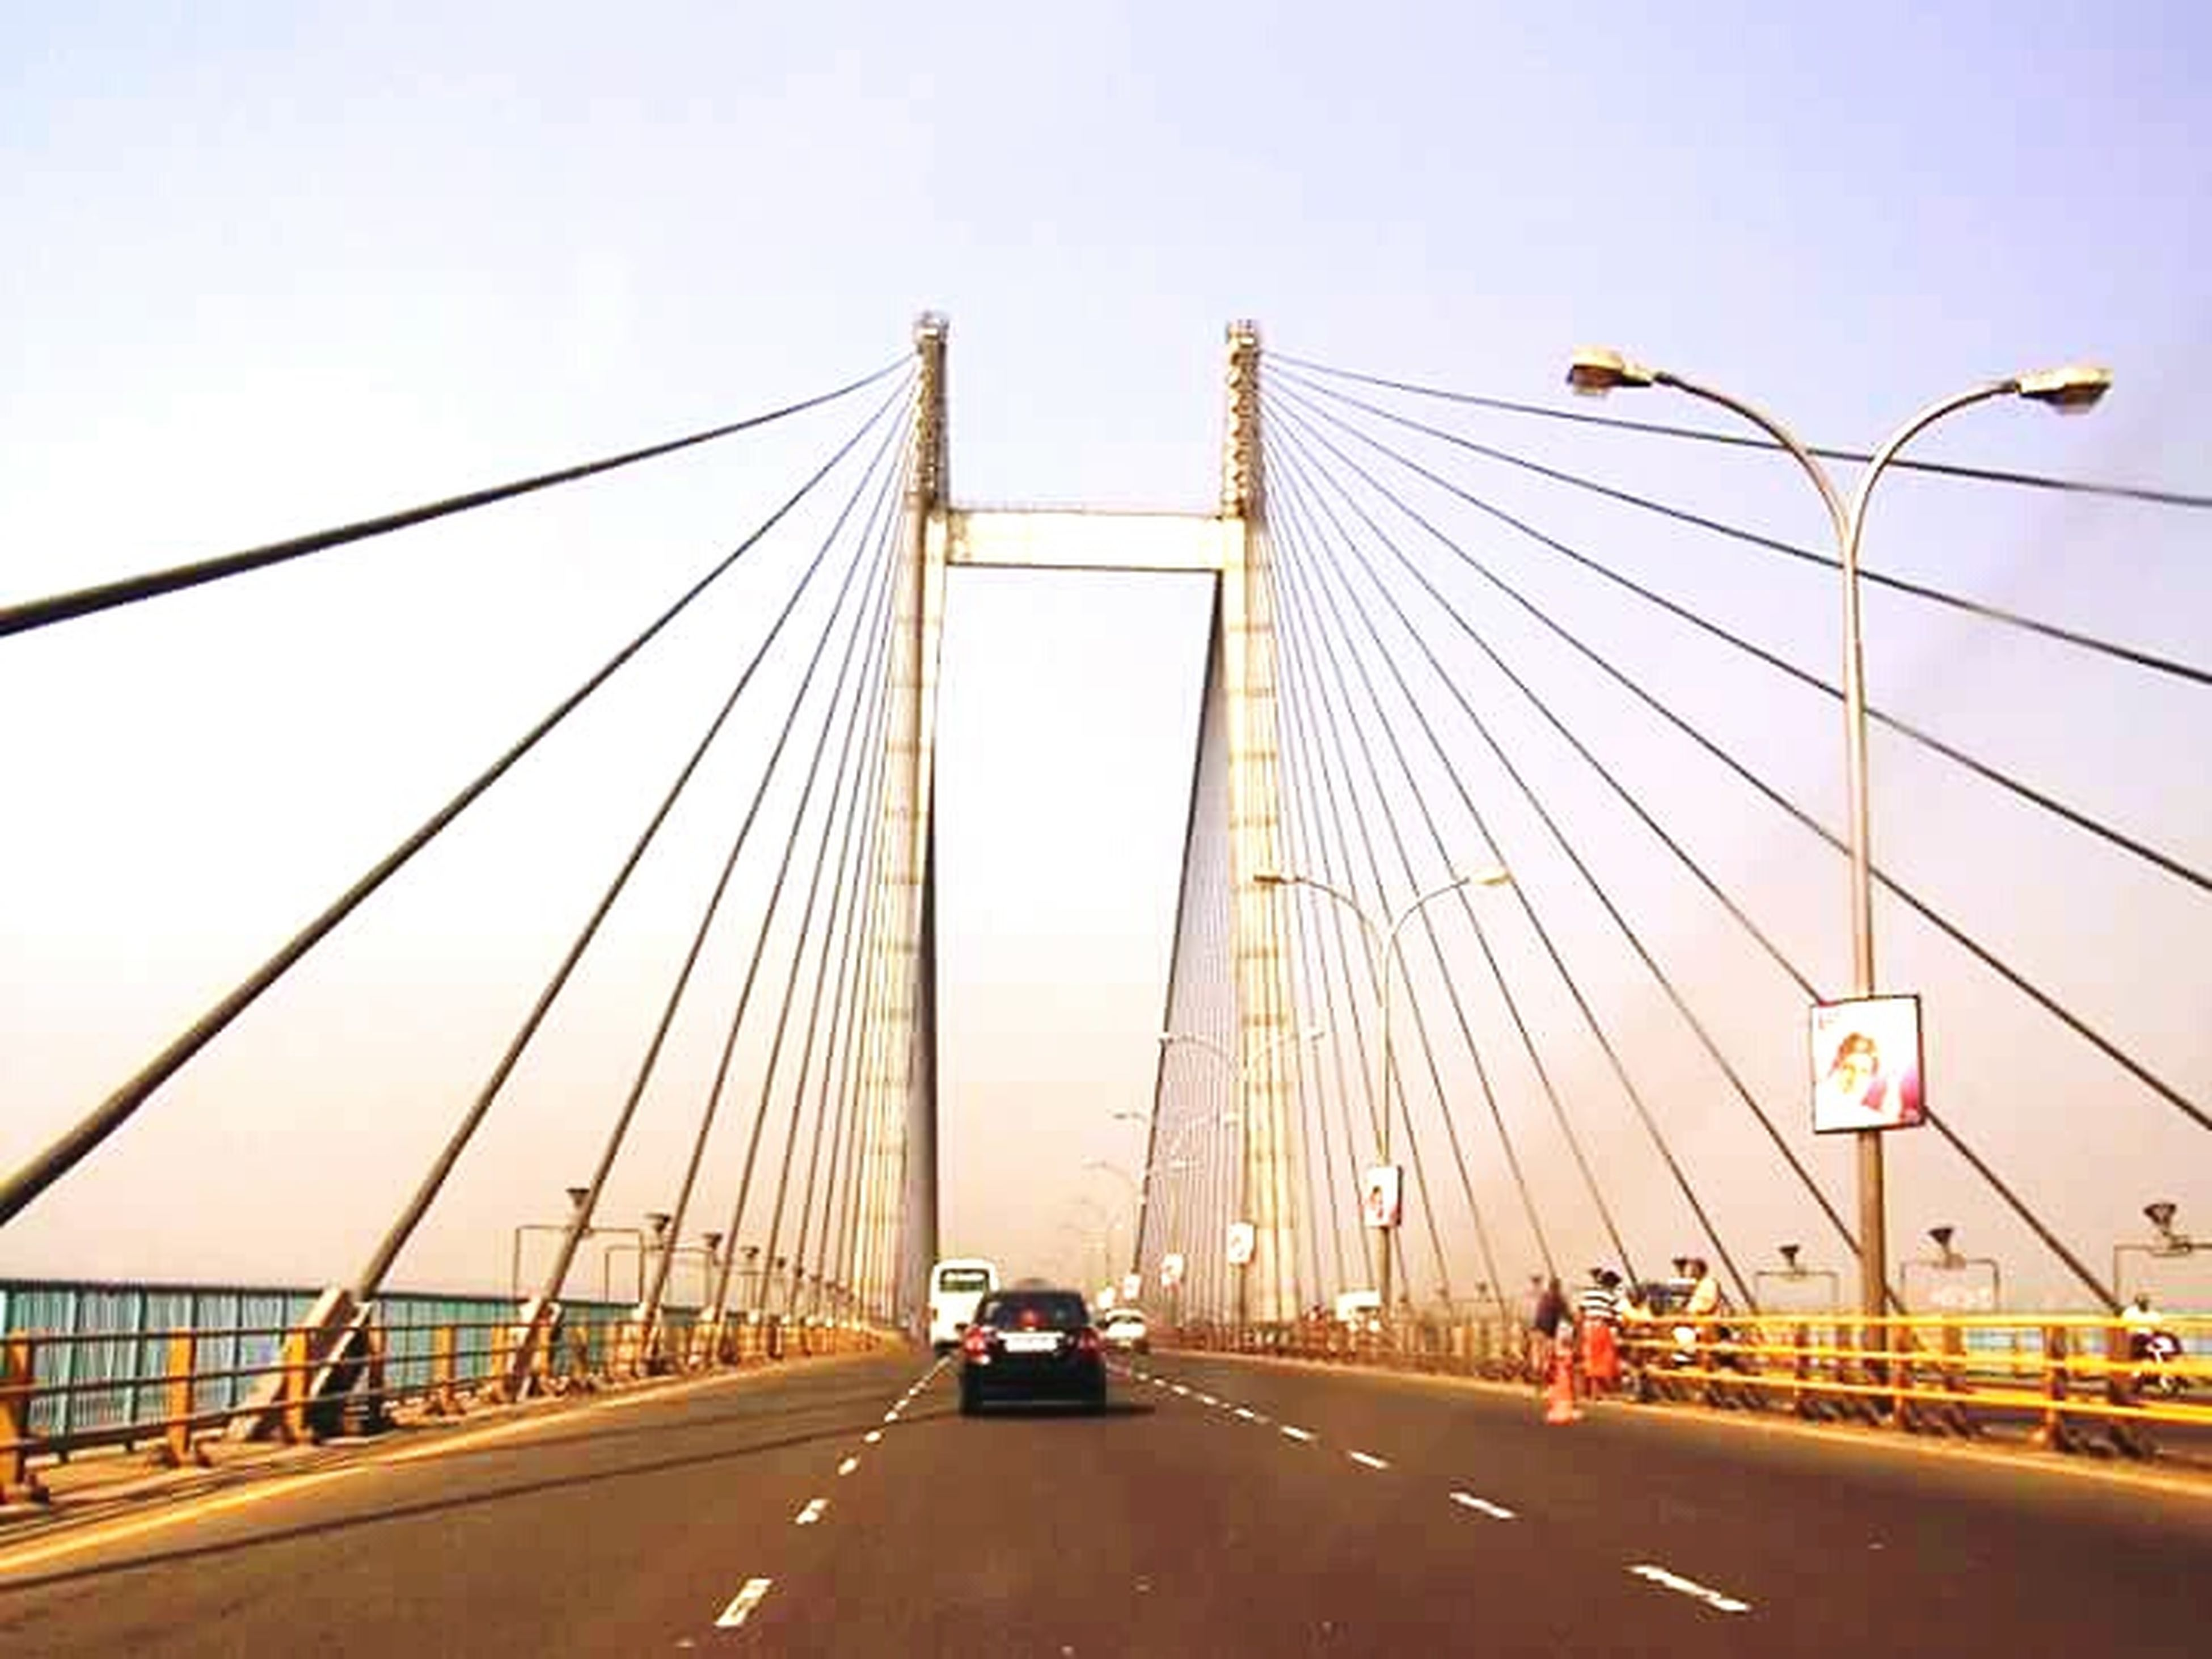 transportation, connection, bridge - man made structure, suspension bridge, road, engineering, car, the way forward, built structure, land vehicle, architecture, bridge, mode of transport, on the move, cable-stayed bridge, travel, road marking, travel destinations, clear sky, street light